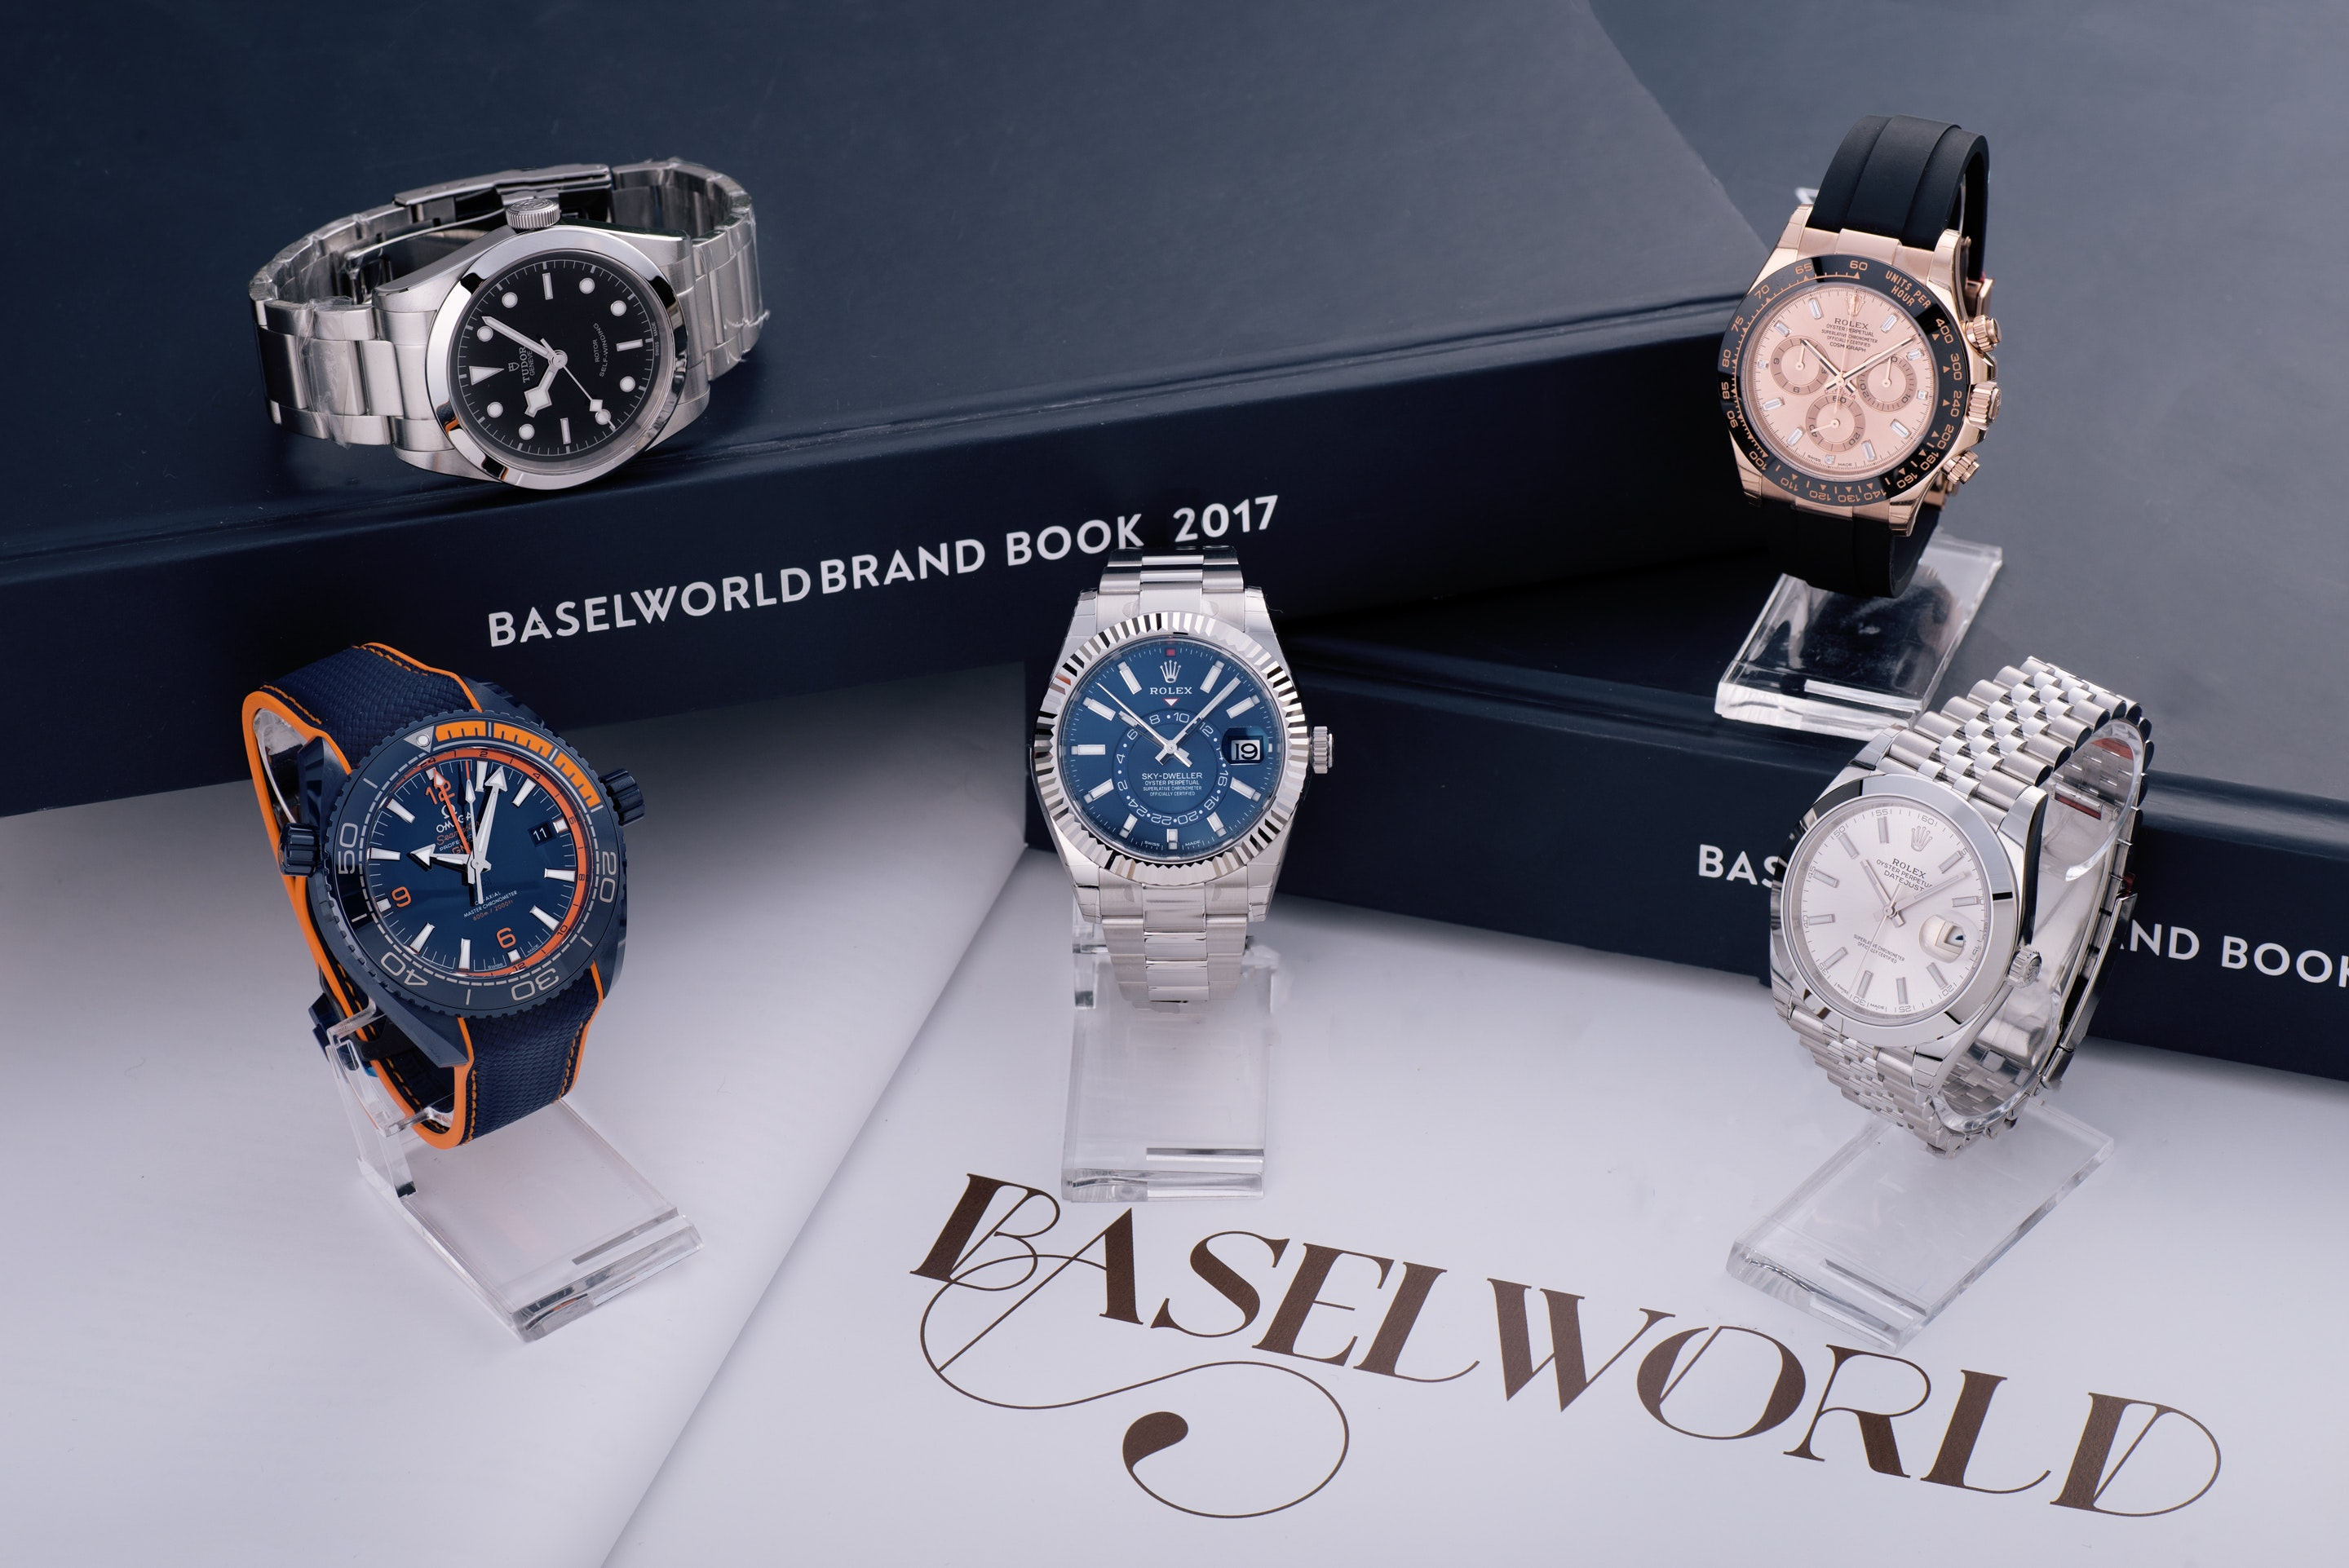 Battle of the watch fairs: Baselworld vs SIHH